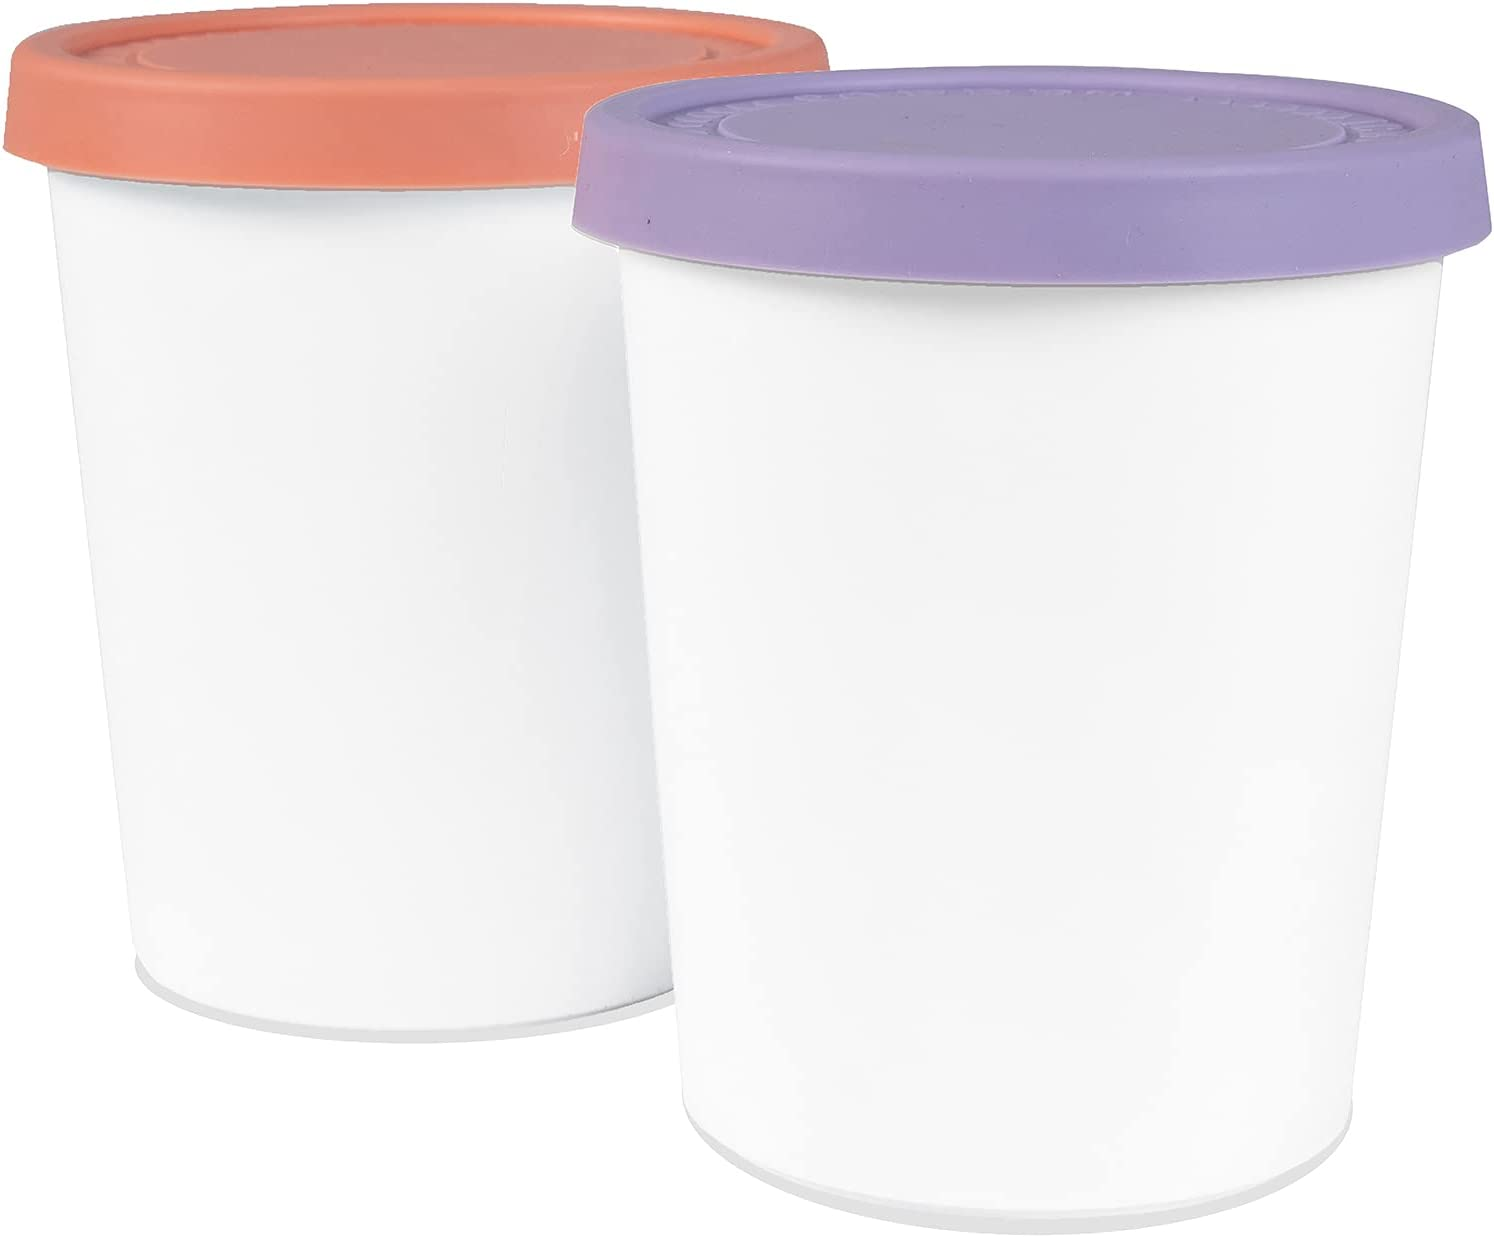 BOBOYOYO Ice Cream Containers, 2 PACK - 1 Litre Each, Tight-Fitting, Stack-Friendly, Large Reusable BPA-Free Freezer Storage Tubs with Lids for Homemade Ice Cream, Sorbet and Gelato!